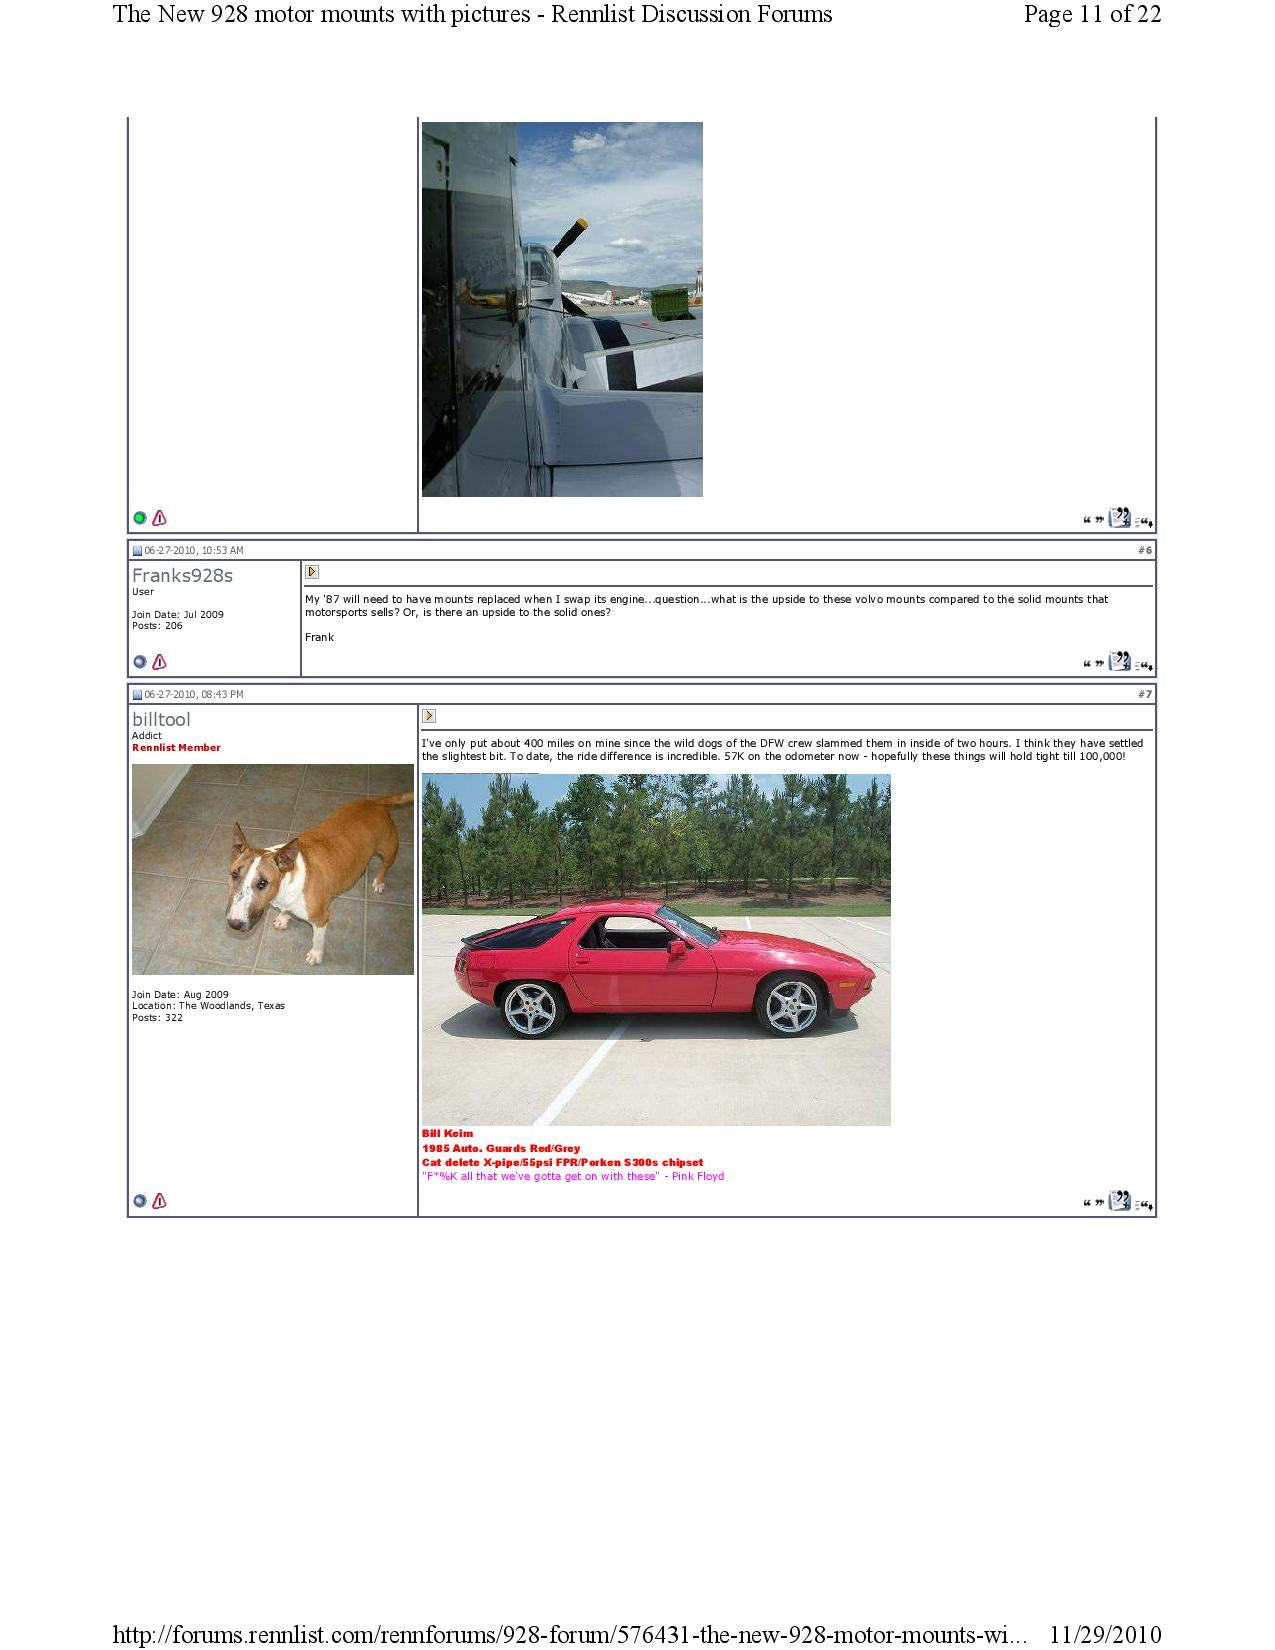 New 928 motor mounts with pictures pg11